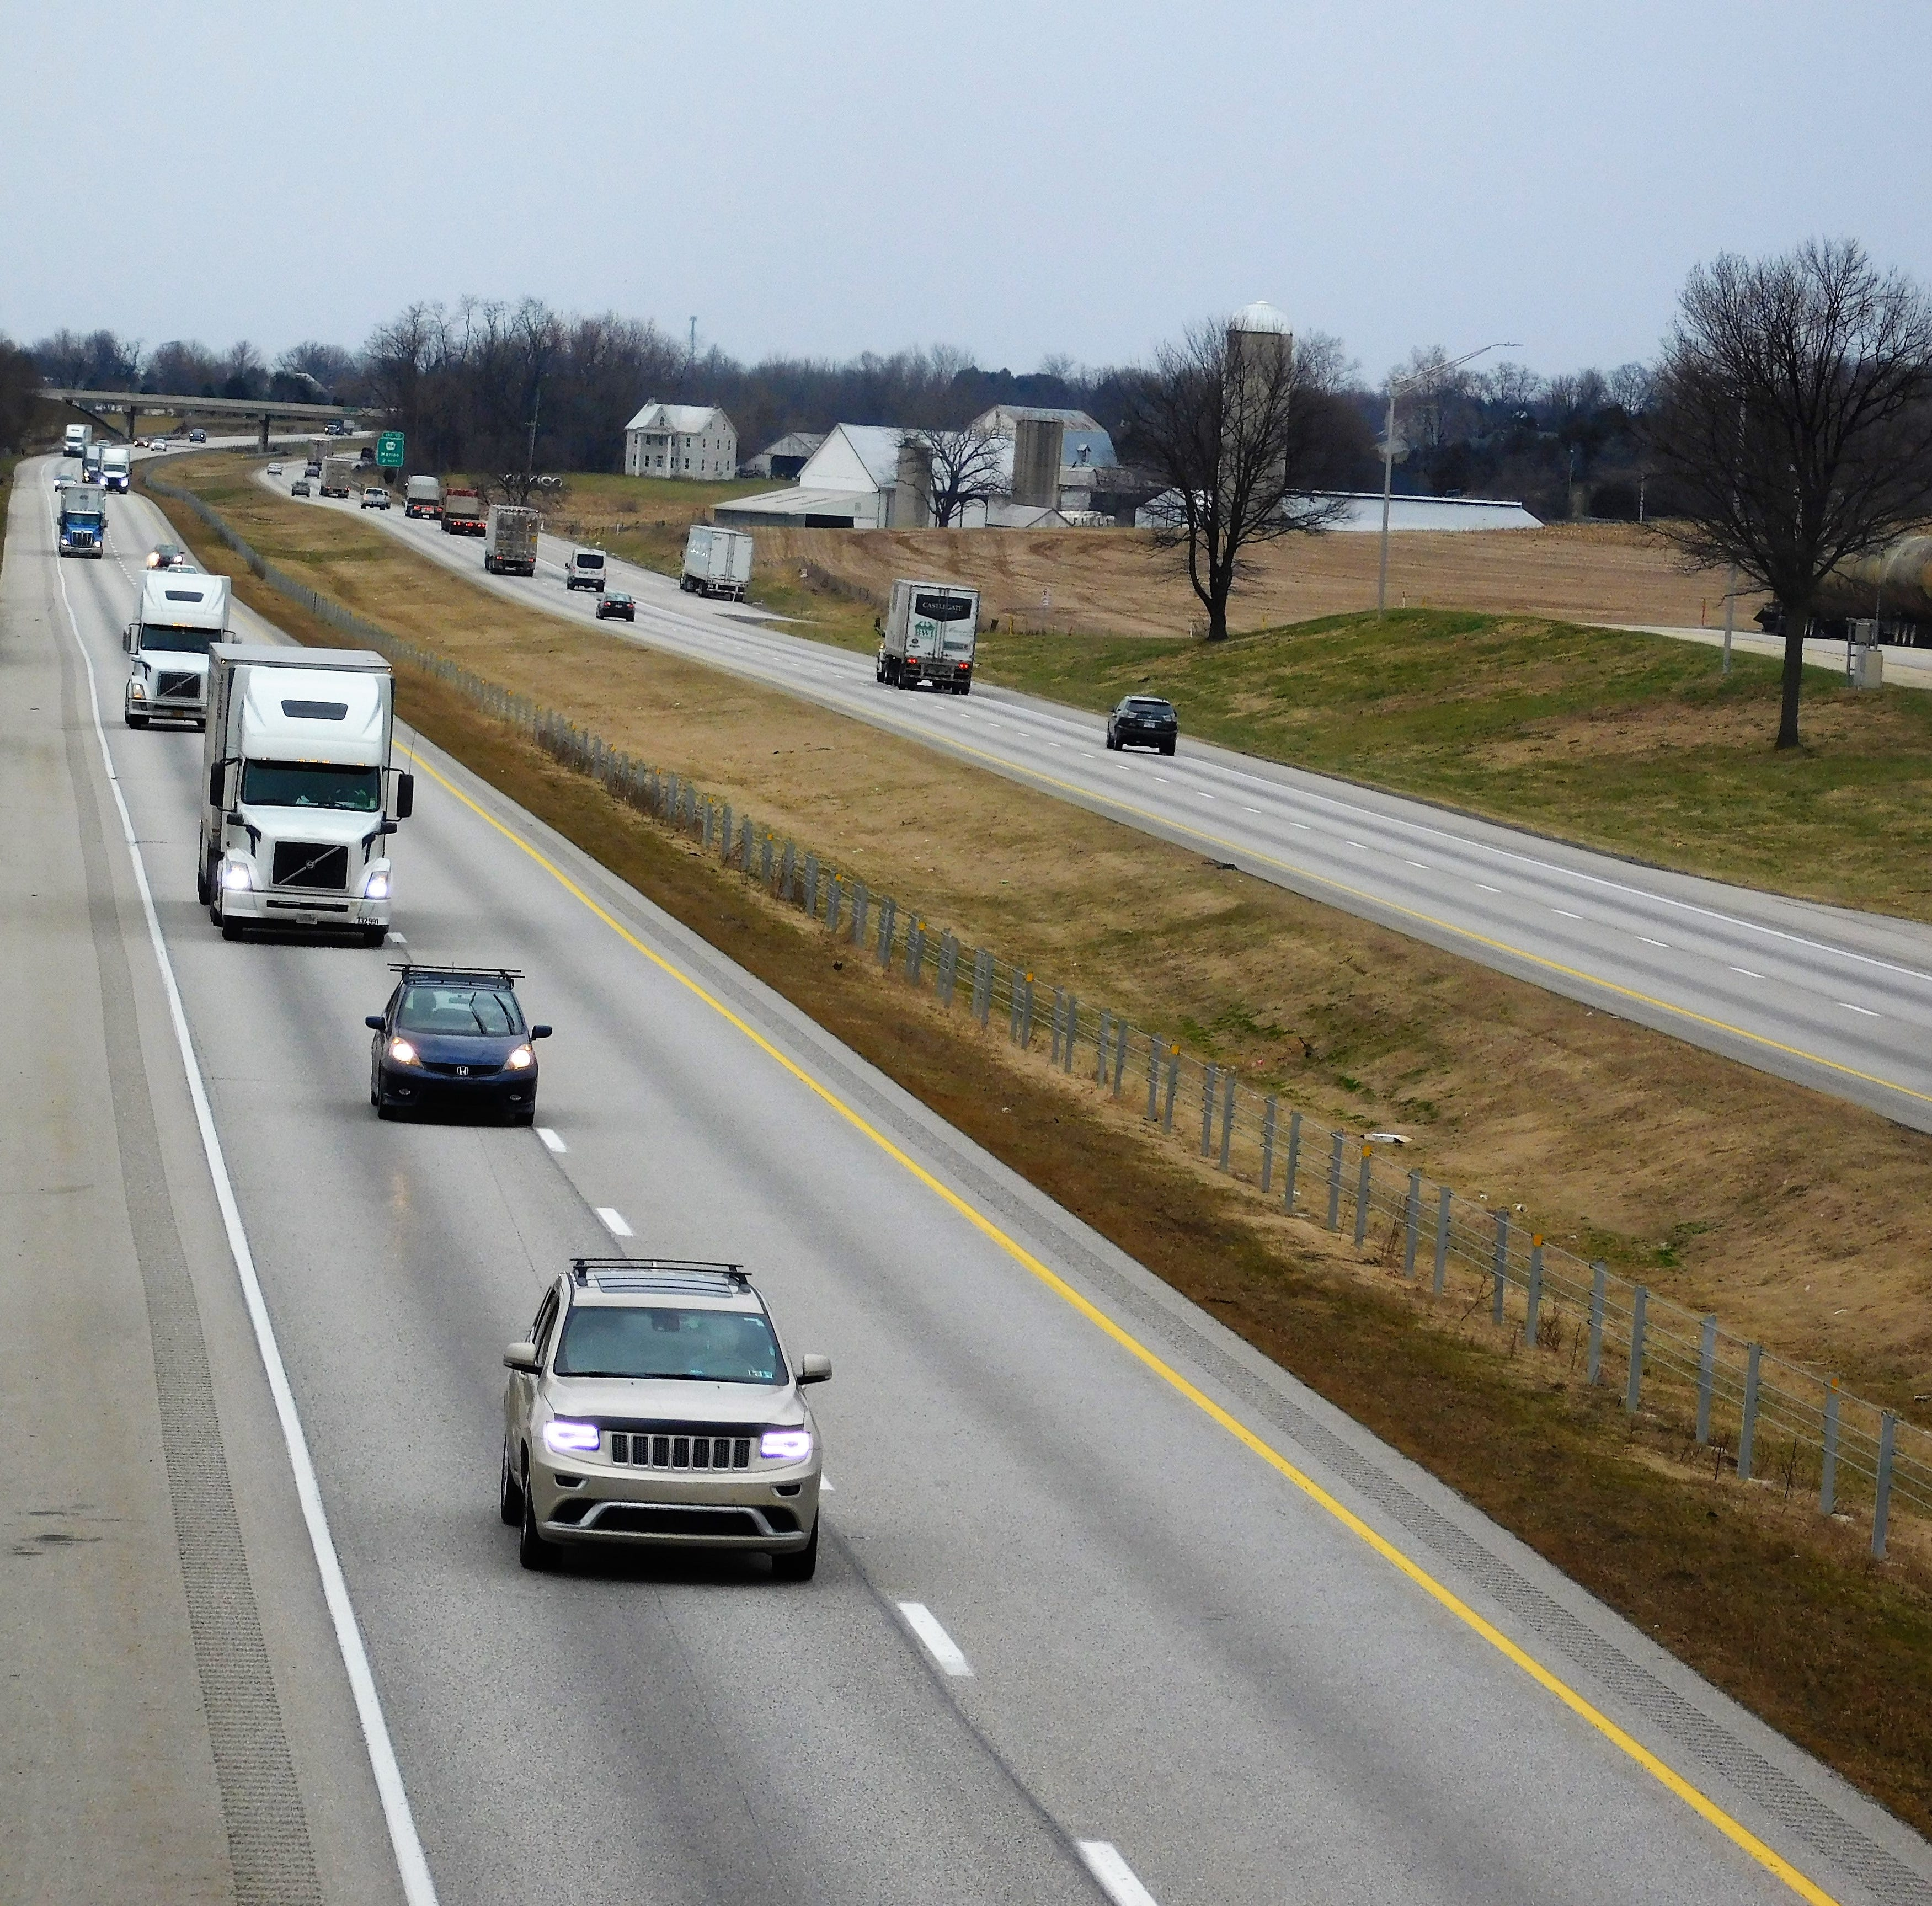 Drivers need to be extra cautious traveling on Interstate 81 next week